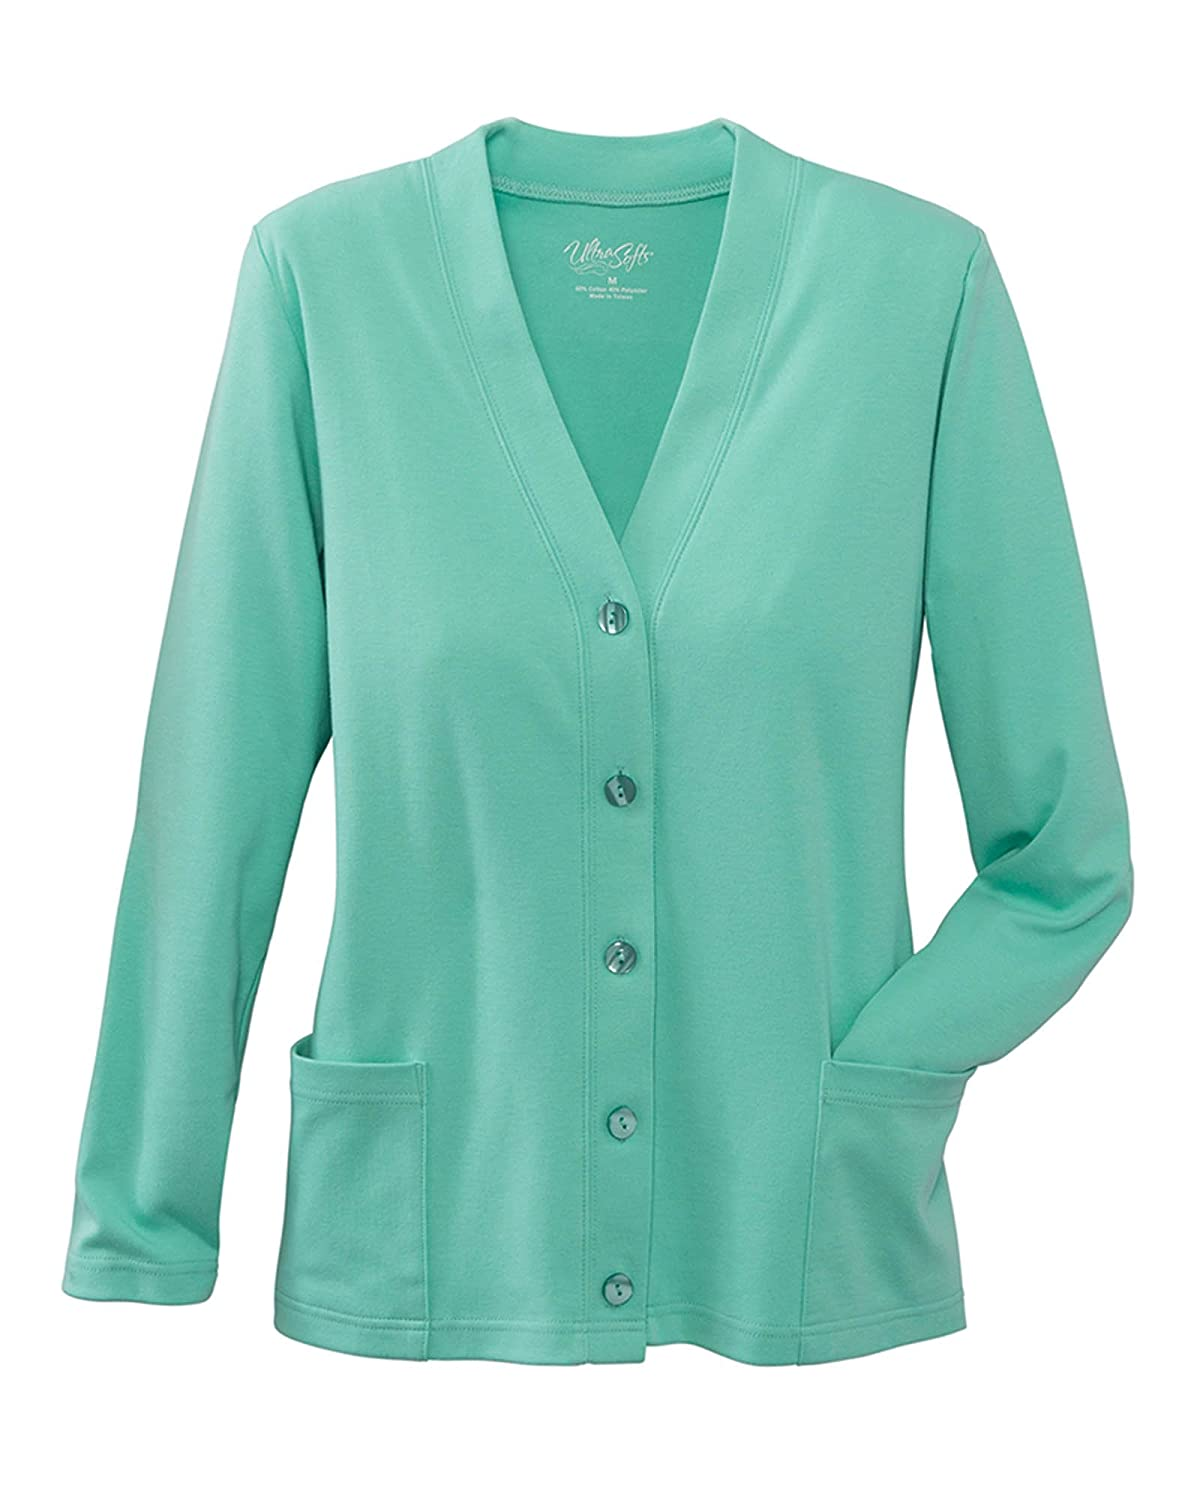 UltraSofts UltraSofts Button-Front Knit Cardigan at Amazon Women's ...